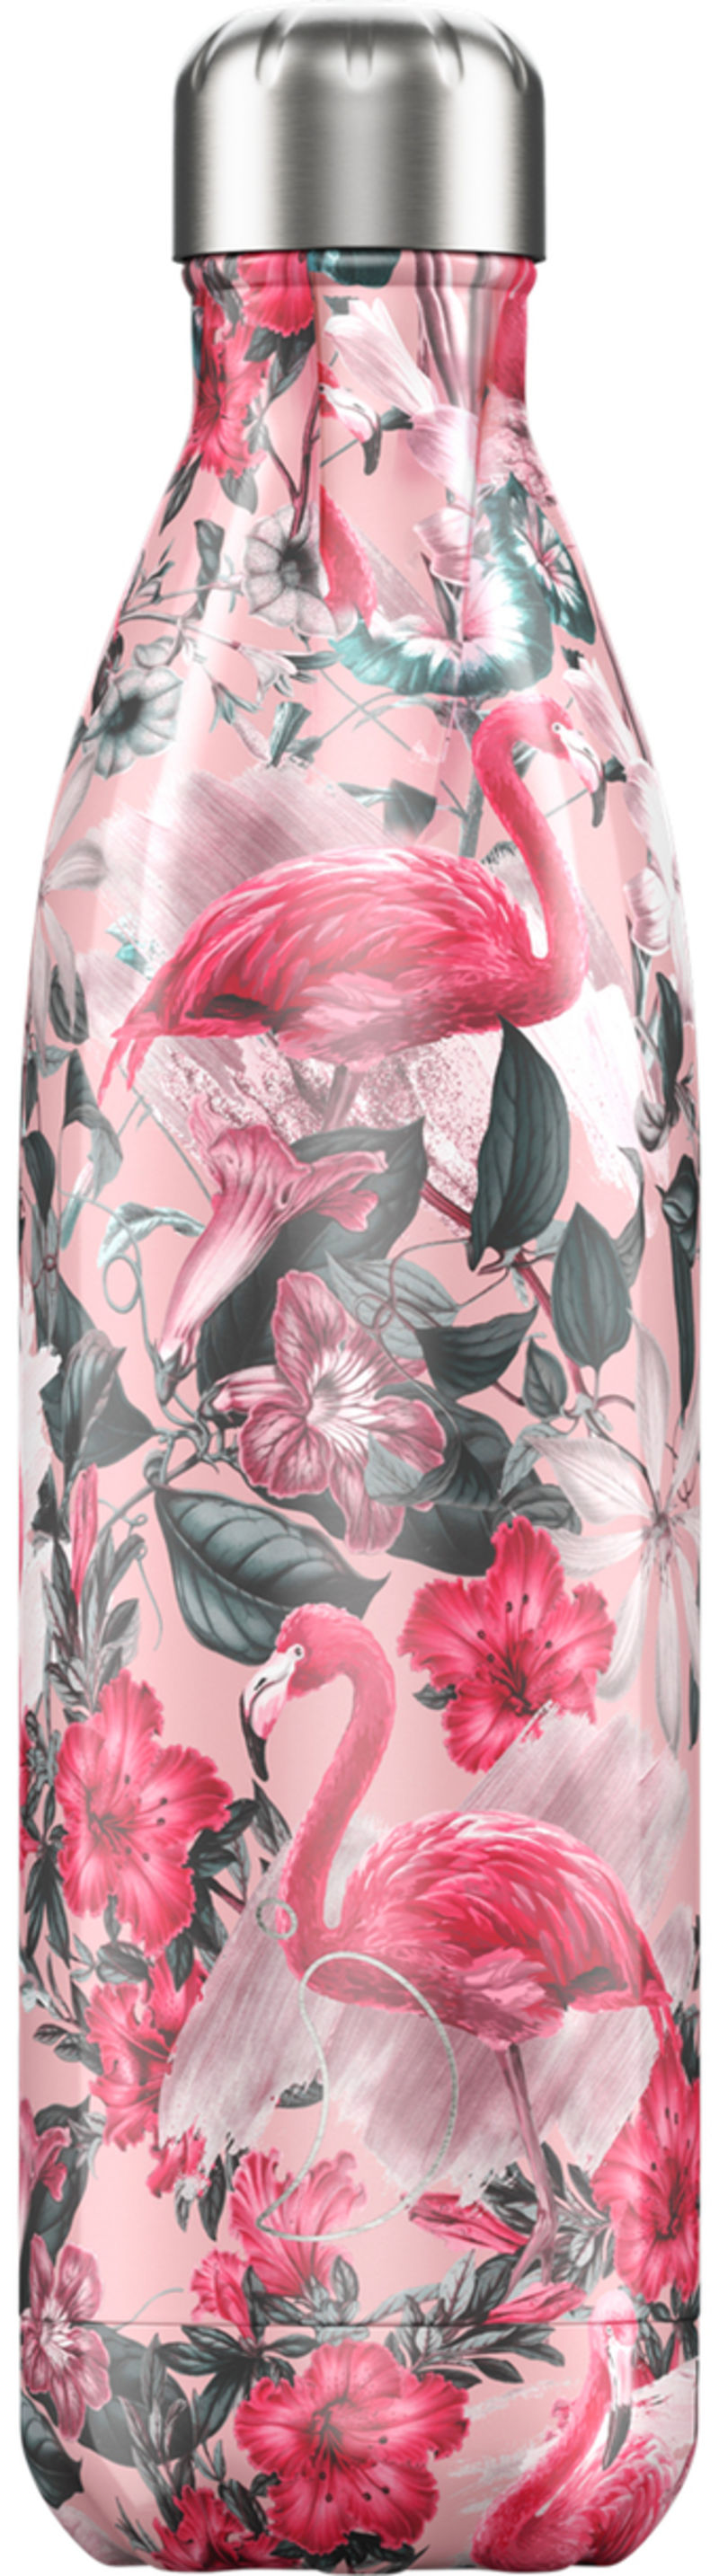 BOTELLA INOX TROPICAL FLAMINGO 750ML